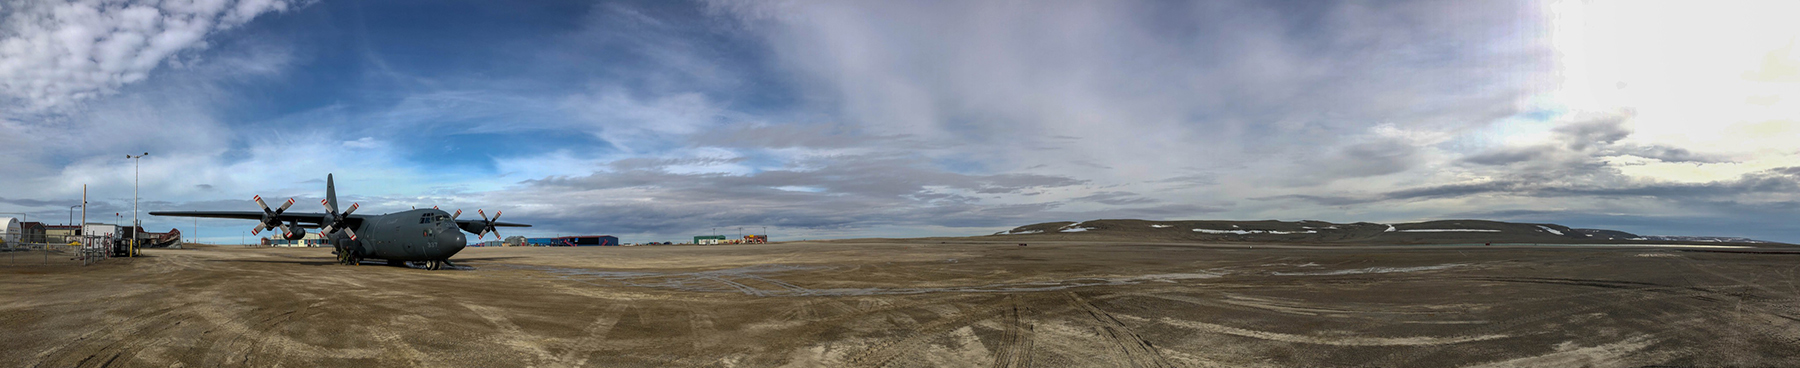 Une vue panoramique de l'aéroport de Resolute Bay, au Nunavut. PHOTO : Ignatius Rigor